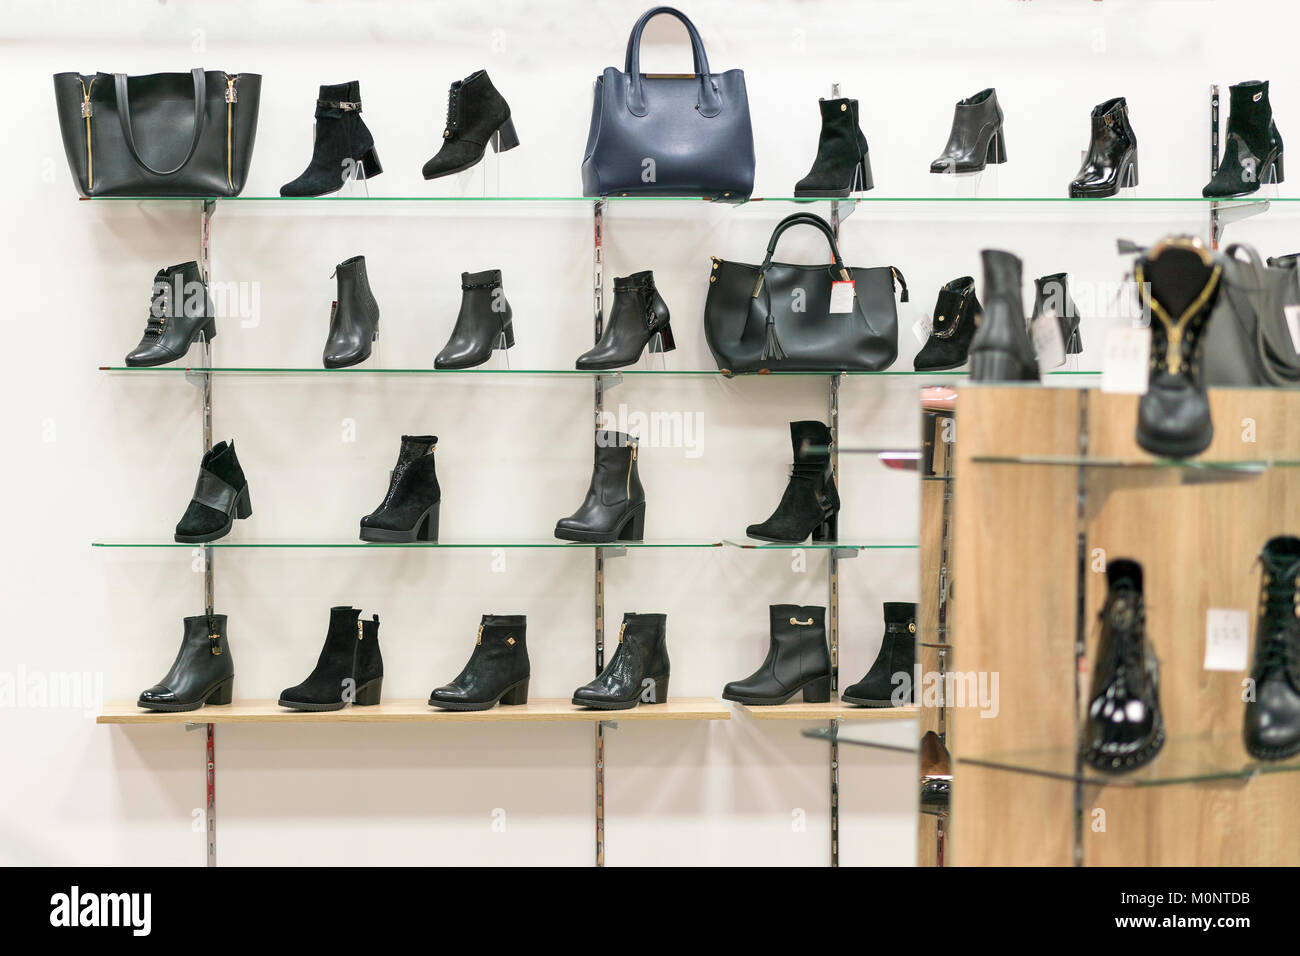 Shelves with leather shoes in a shoe store - Stock Image